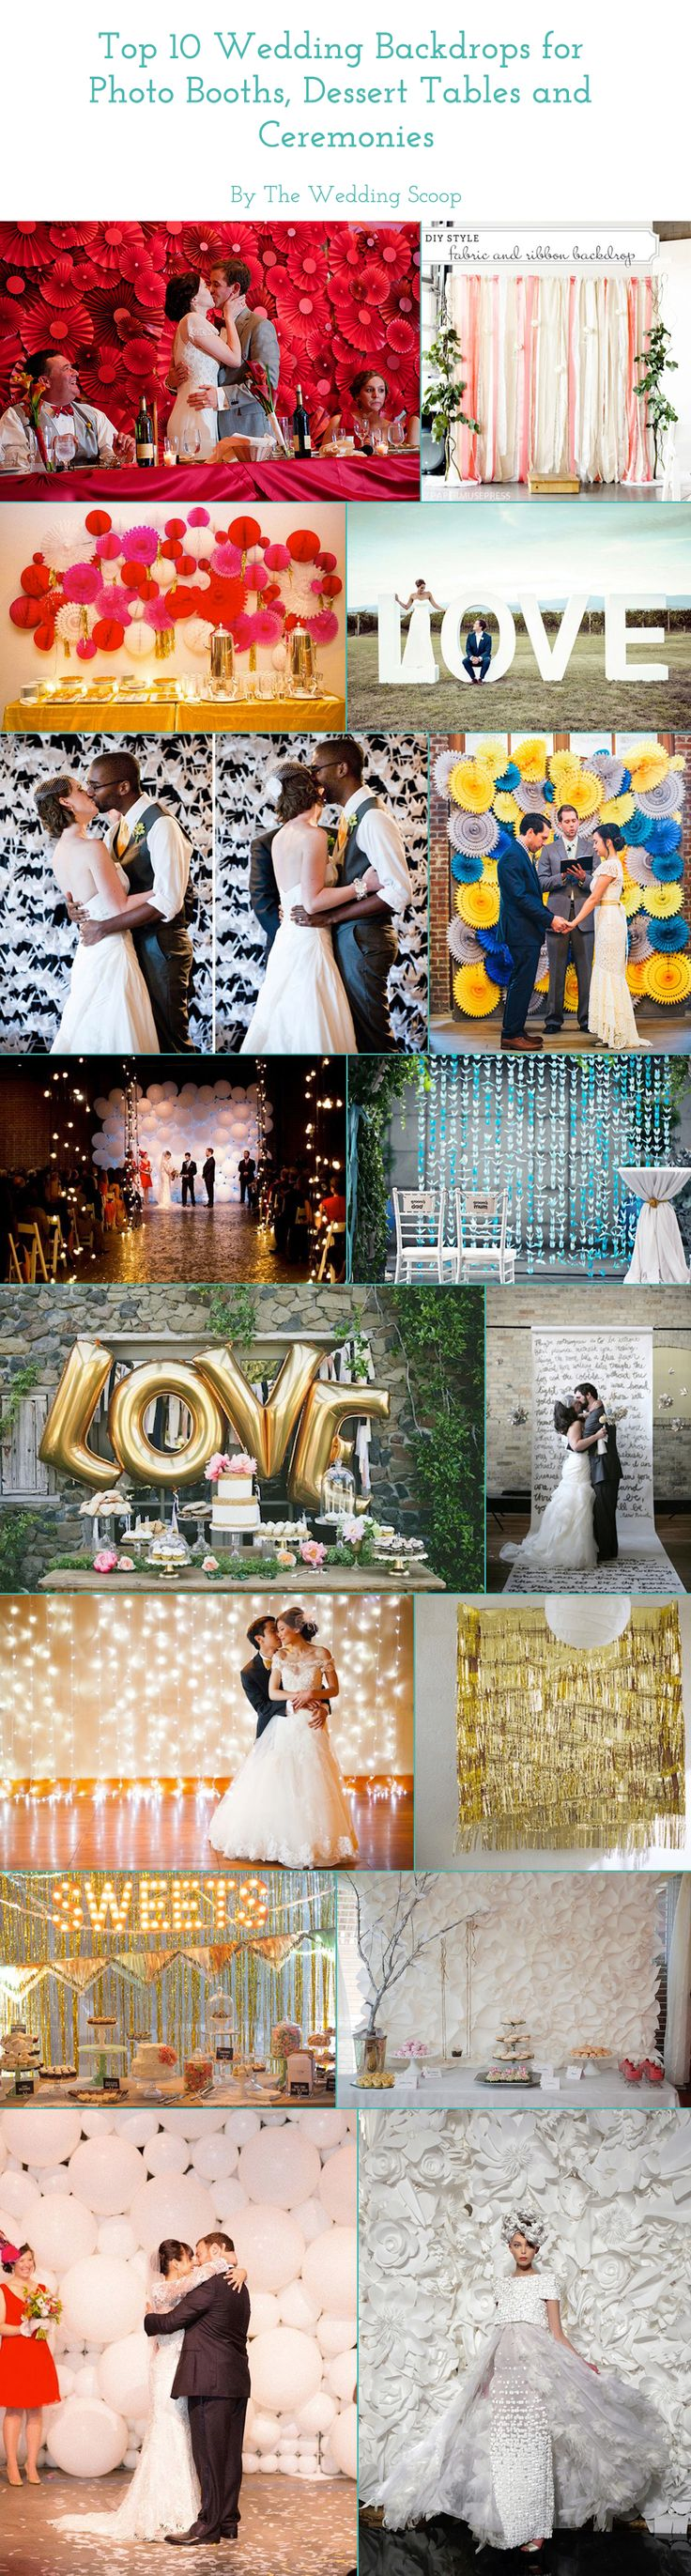 We've come across many inspiring wedding backdrops perfect for gracing the walls of photo booths, dessert tables, ceremonies and dance floors. The Wedding Scoop has rounded up our top 10 favourites that are so beautiful, you could even say your vows in front of them! Read the full article on our Blog at http://www.theweddingscoop.com/entry/top-10-wedding-backdrops-for-photo-booths-dessert-tables-and-ceremonies